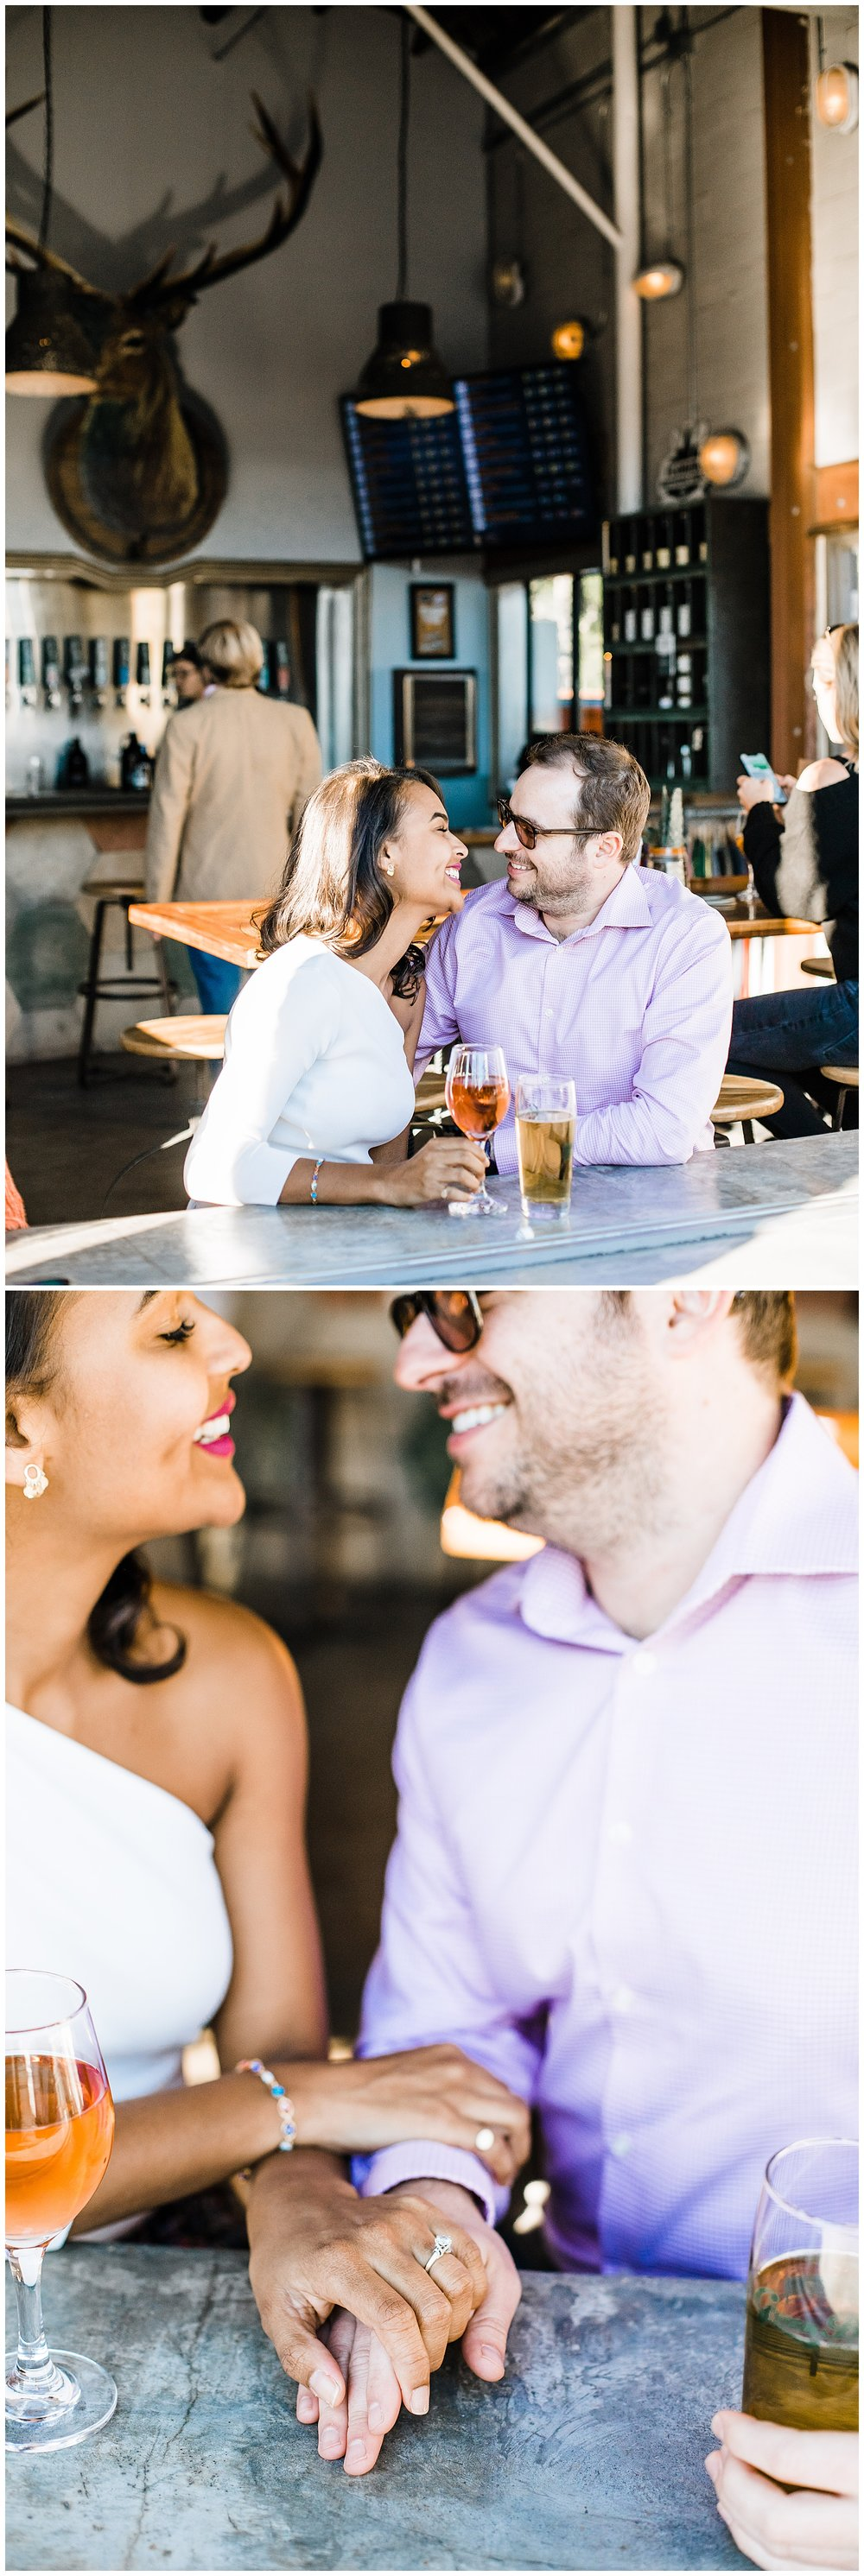 jessicafredericks_st petersburg_florida_downtown_engagement_palm trees_sunset_brewery_0013.jpg